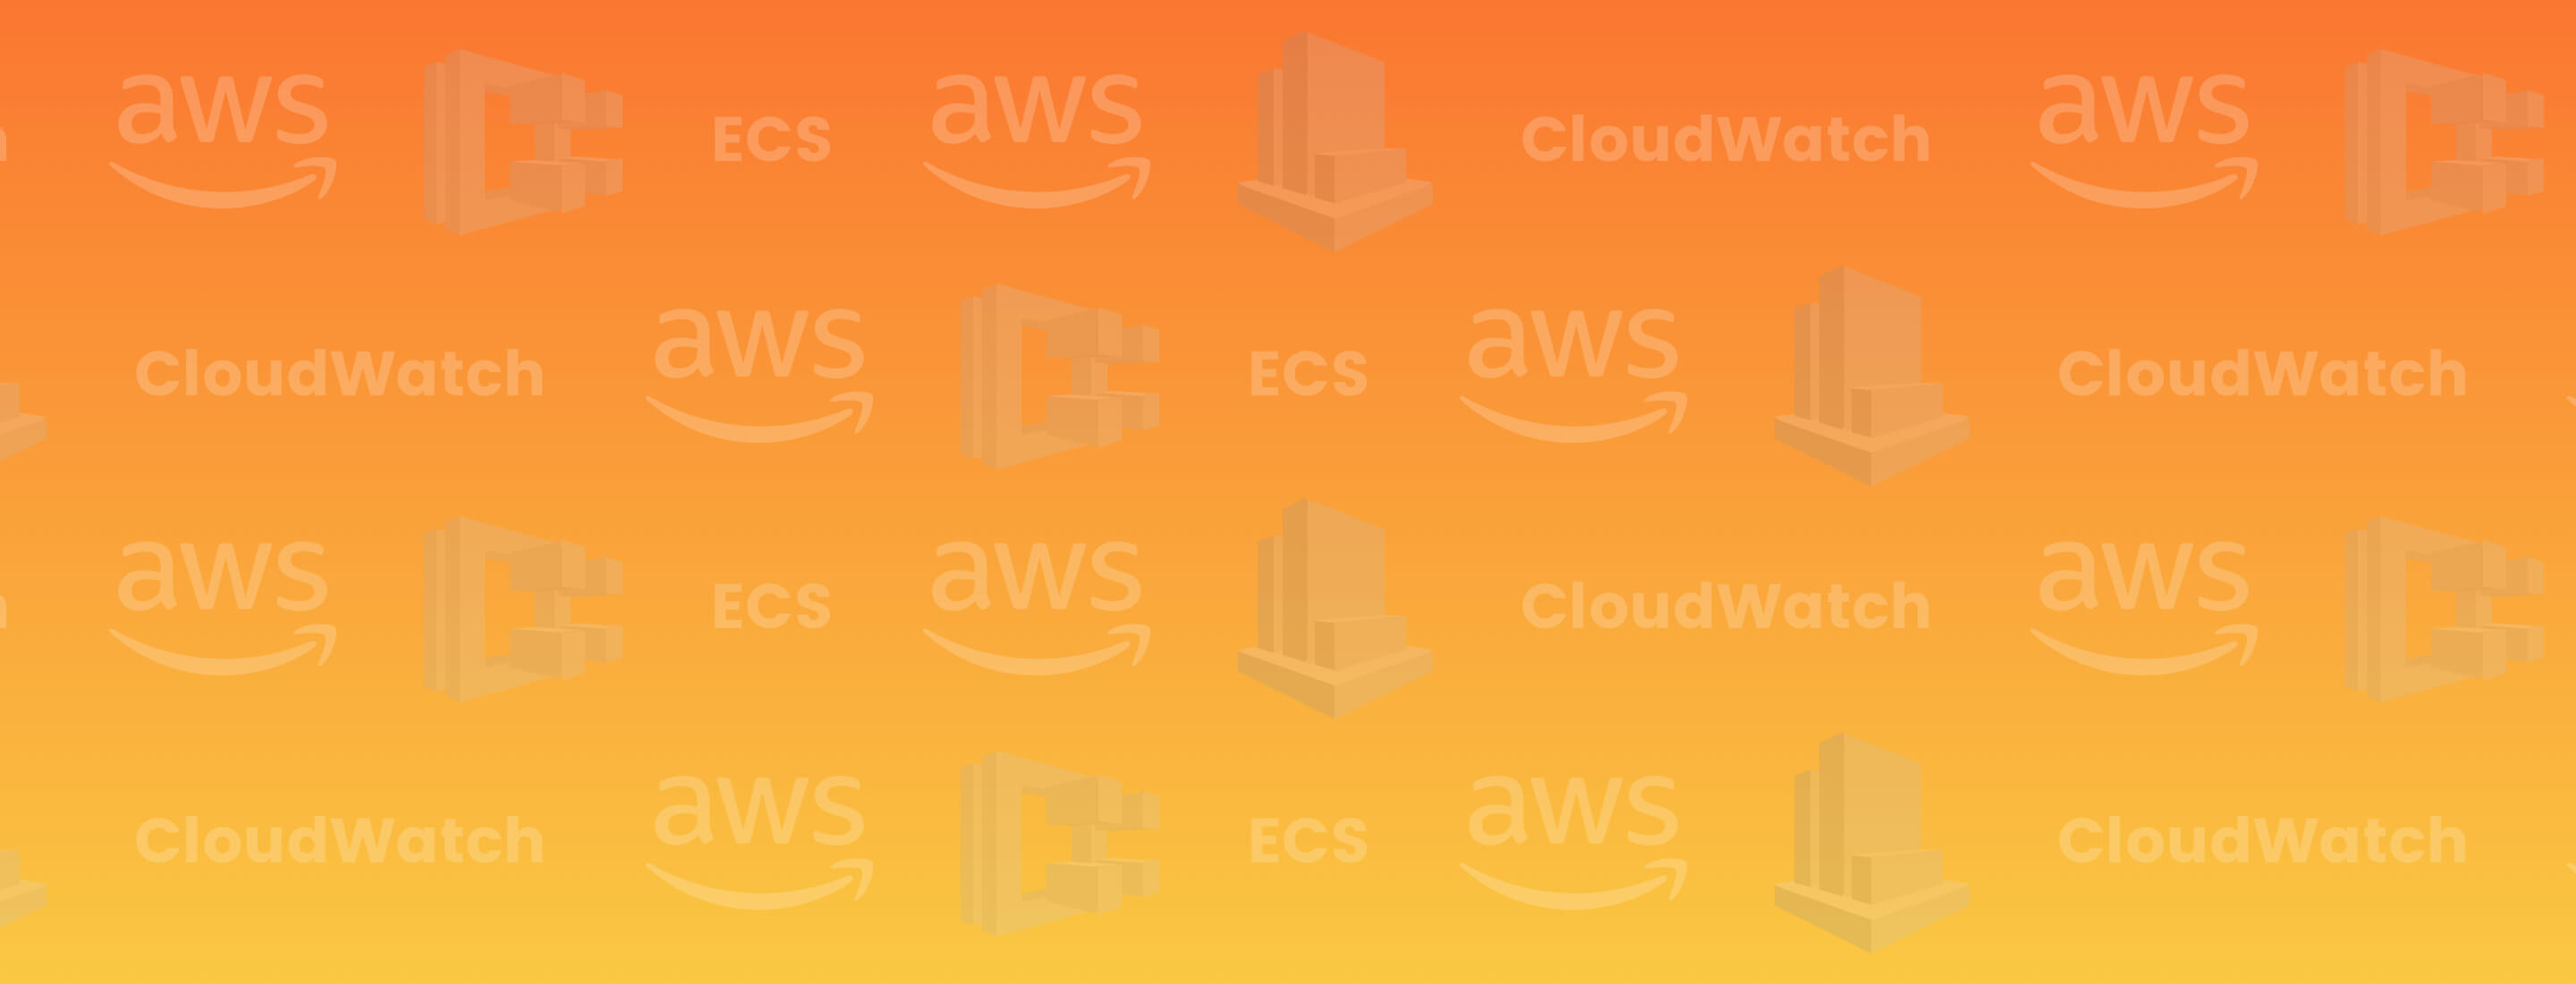 How to Monitor Amazon ECS with CloudWatch